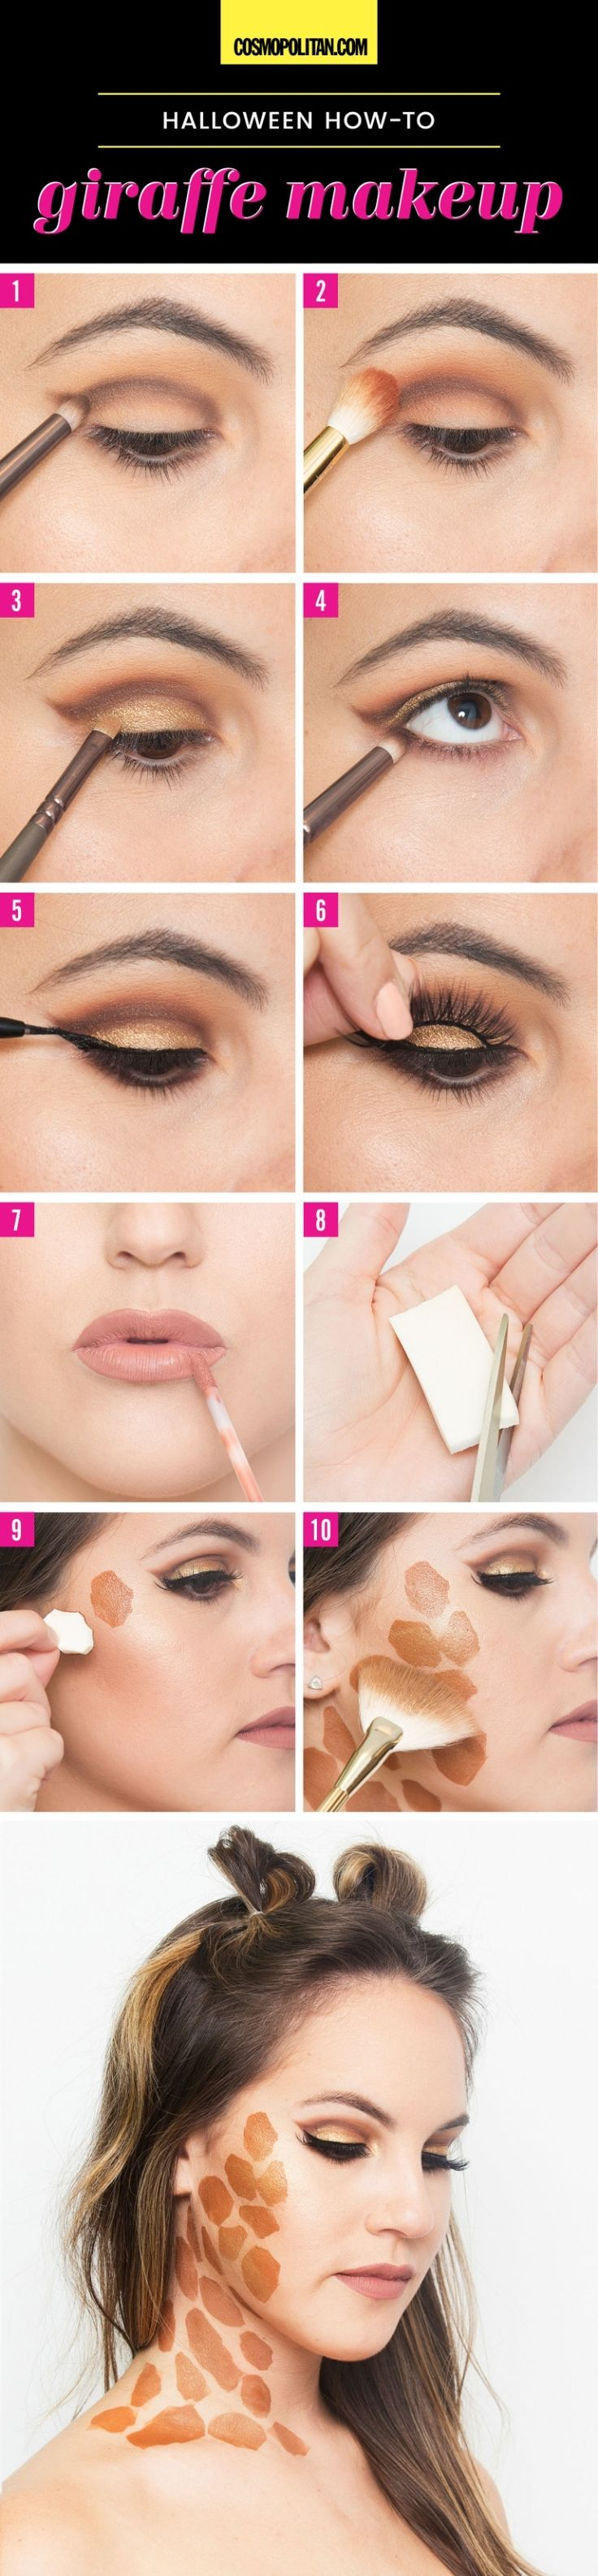 easy halloween makeup tutorials halloween makeup ideas with products you already have